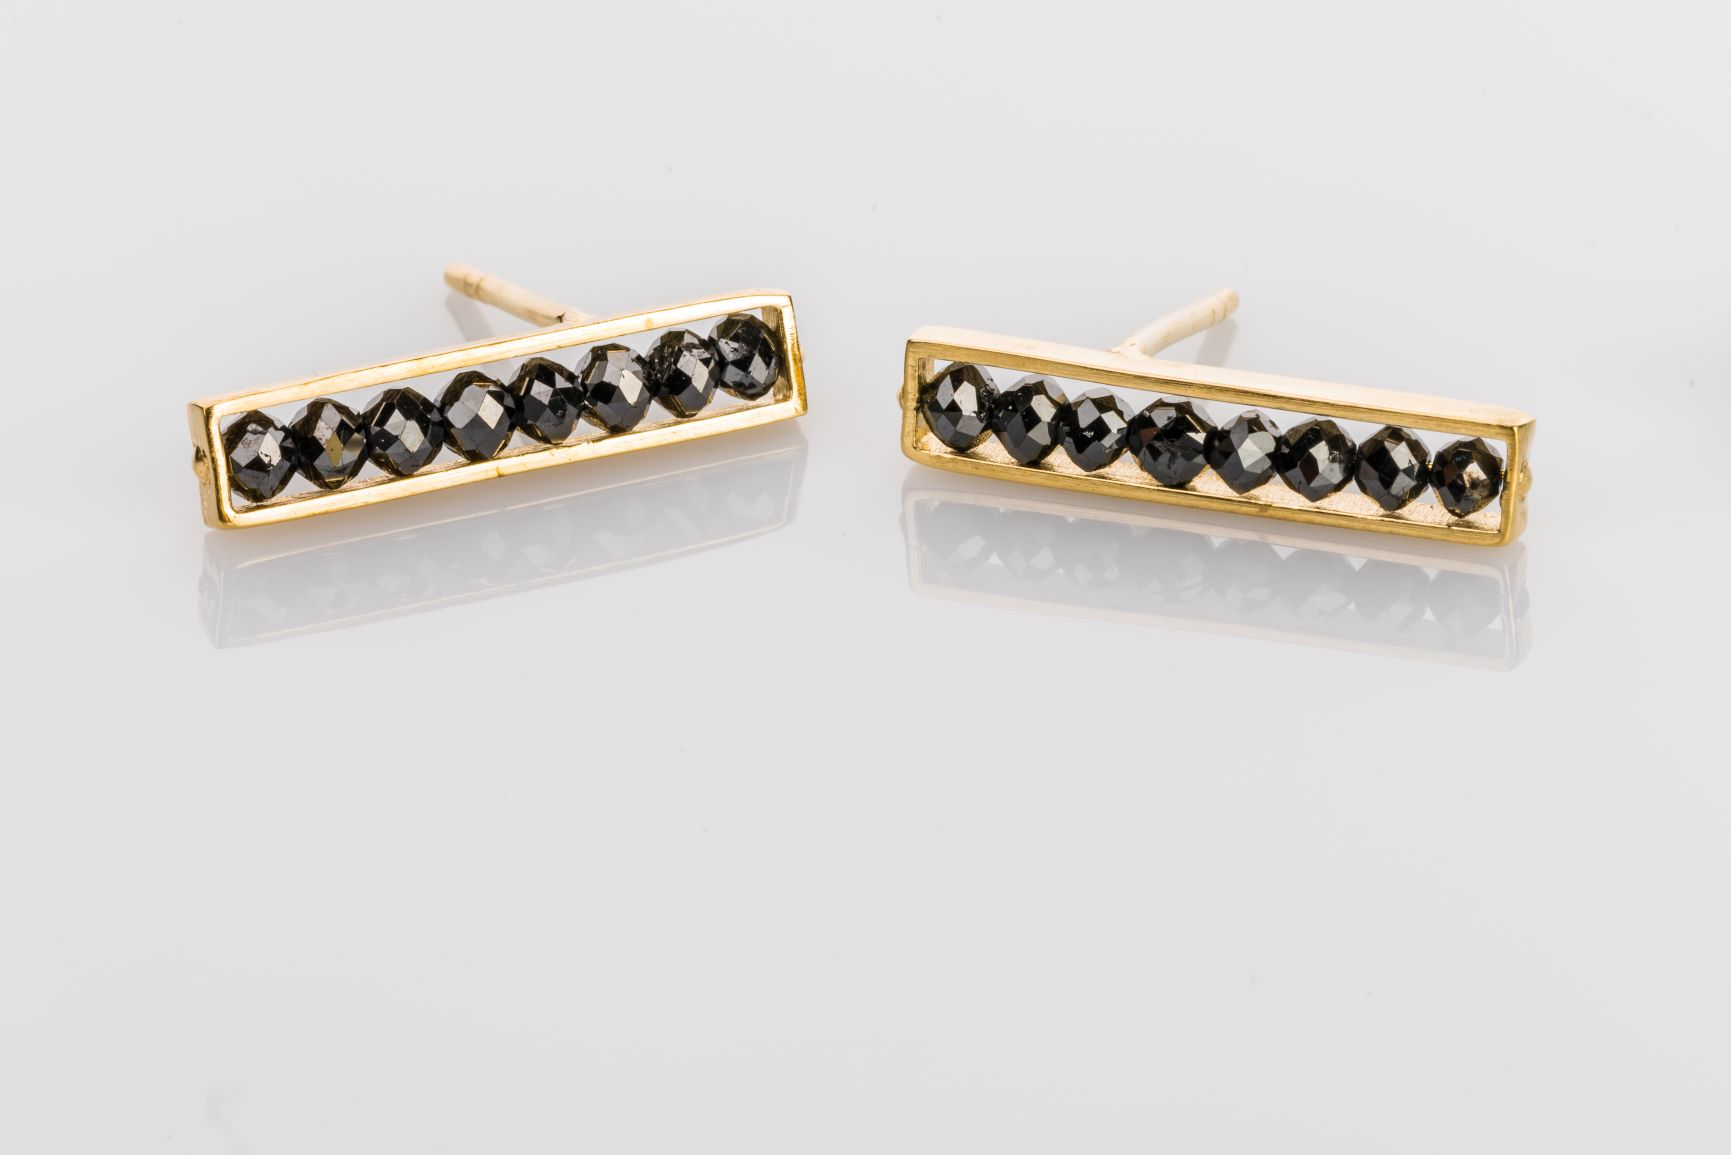 18k yellow gold black diamond bar studs, sydney strong, greenville, south carolina